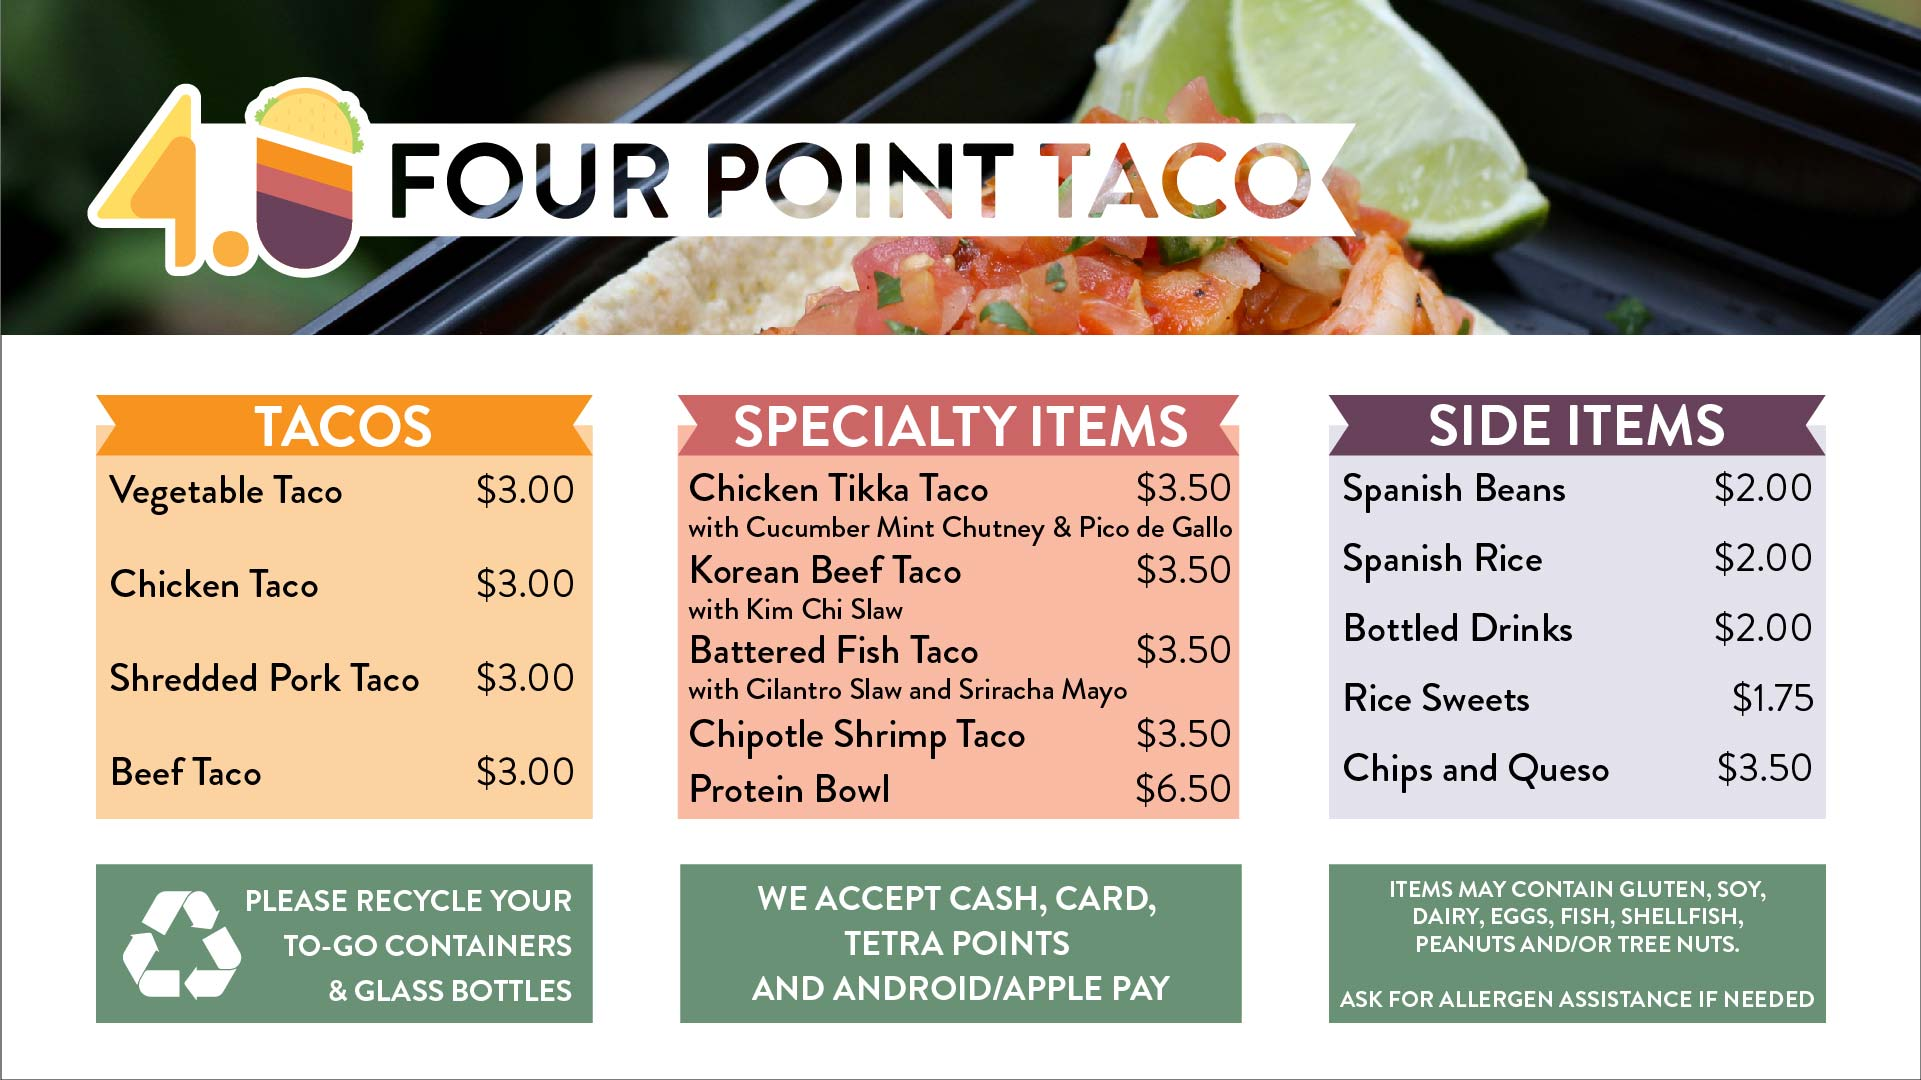 4PointTaco-Lunch_Updated-5_17_2018-01.jpg